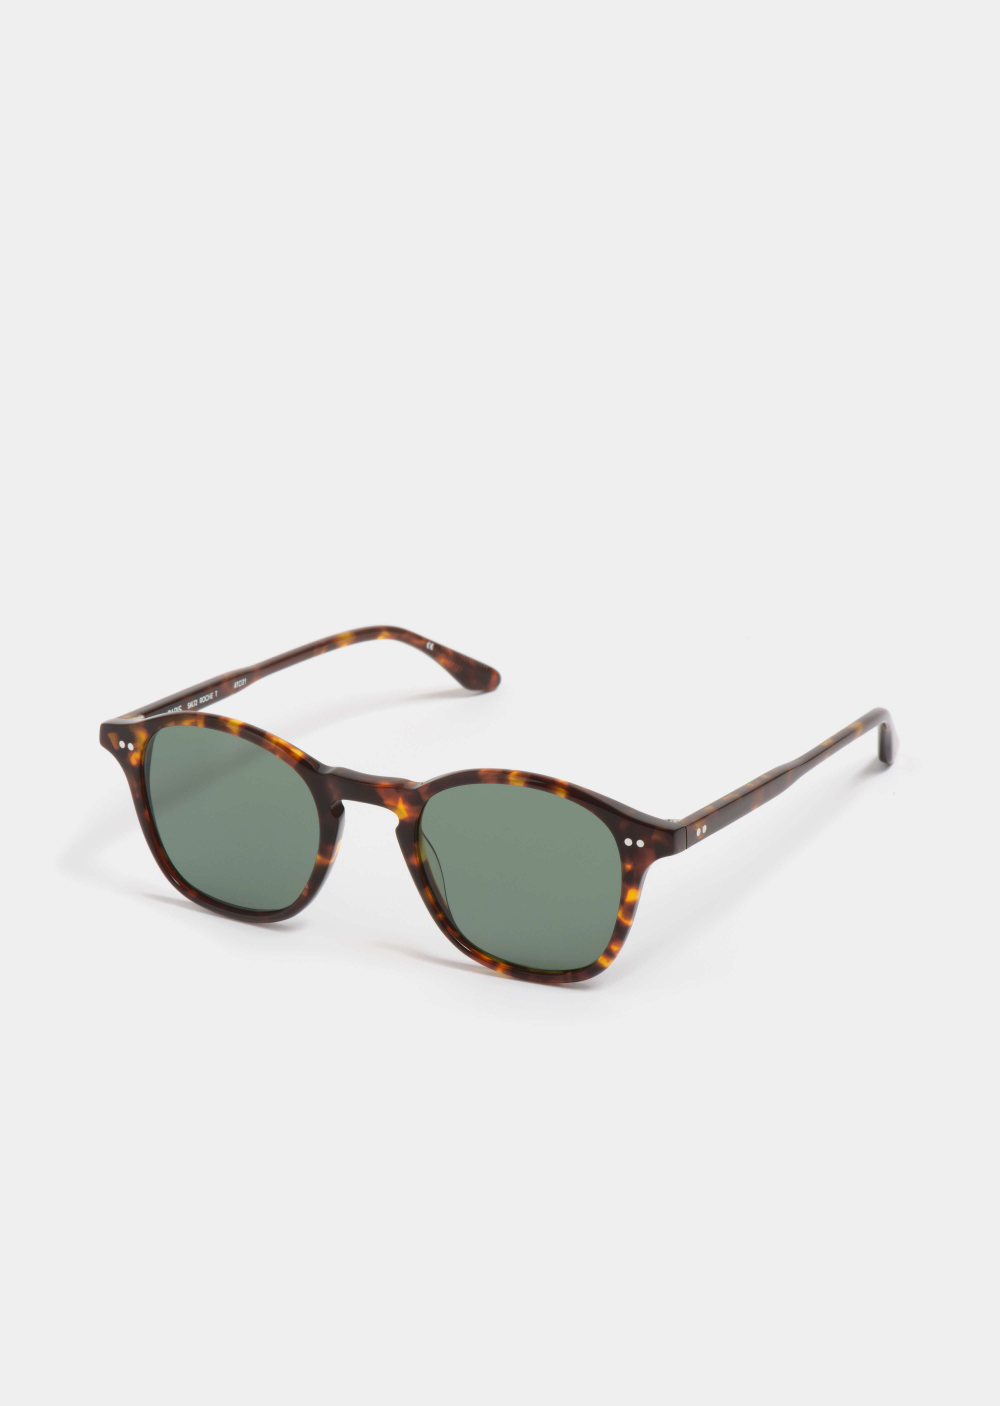 PETER AND MAY -  - LT2 Roche tortoise